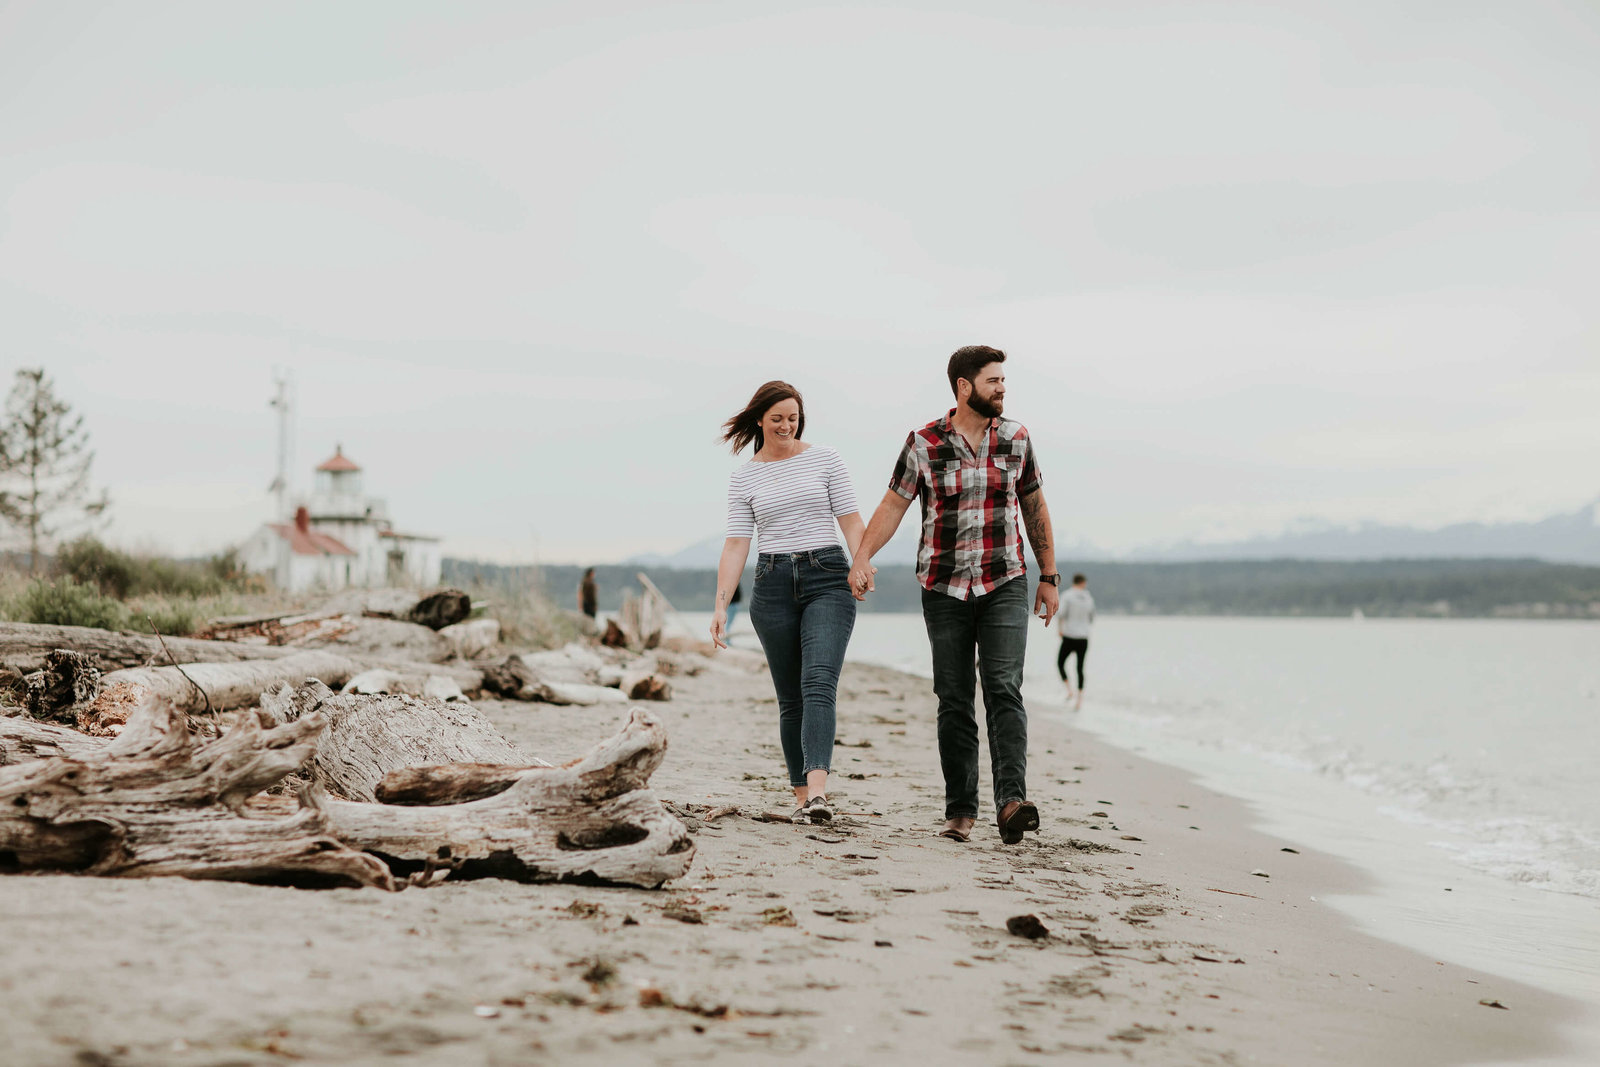 Discovery-Park-Engagement-Chelsey+Troy-by-Adina-Preston-Photography-2019-87